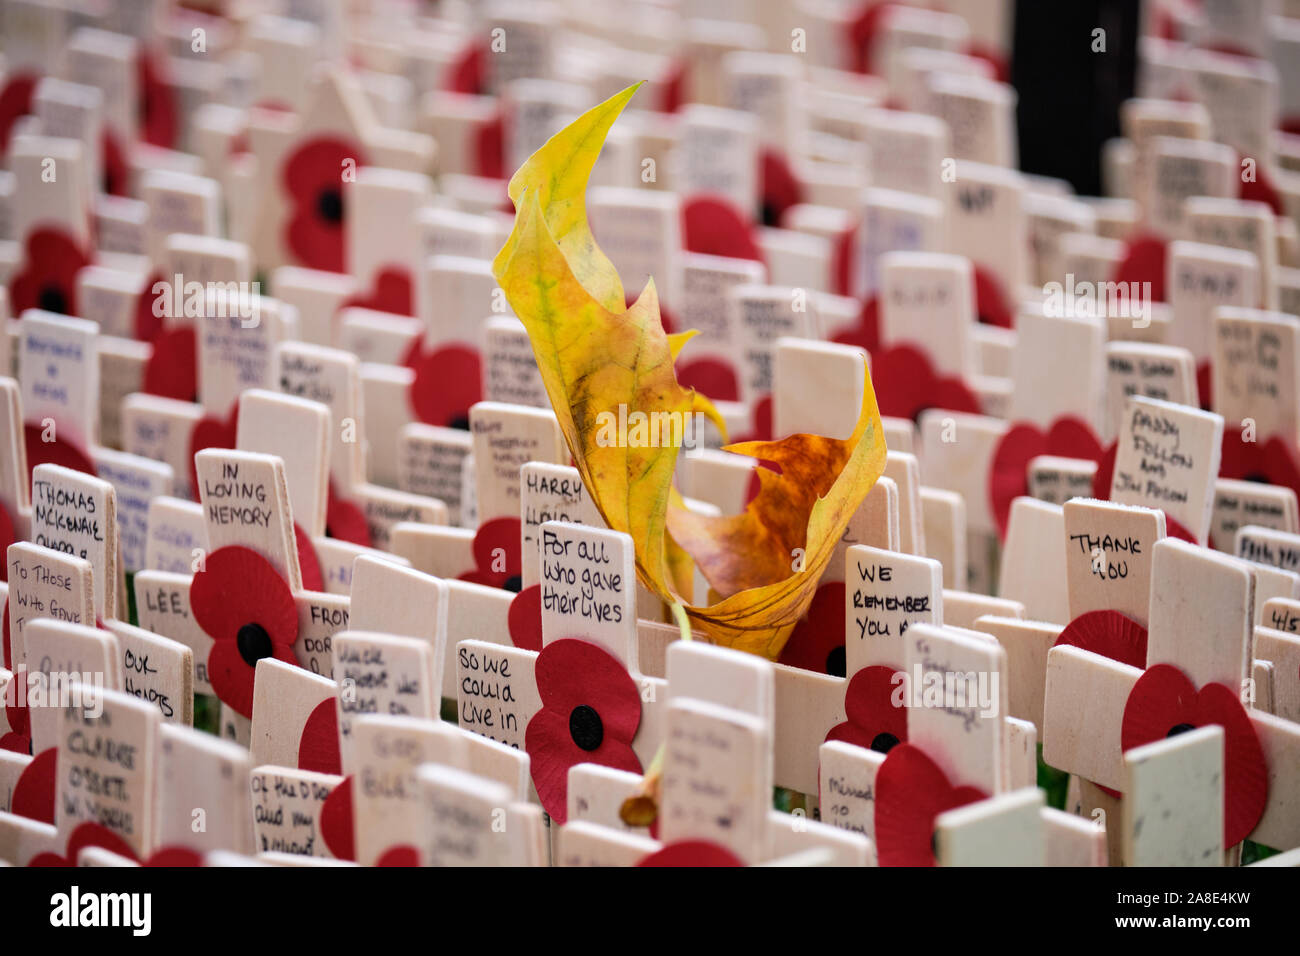 westminster-london-uk-8th-november-2019-people-coming-to-pay-tribute-to-fallen-soldiers-at-the-field-of-remembrance-on-westminster-abbey-grounds-now-open-to-the-general-public-fallen-yellow-leaf-fallen-in-rows-of-memorial-crosses-with-inscriptions-and-poppies-the-field-will-remain-open-until-the-18th-of-november-credit-jf-pelletier-alamy-live-news-2A8E4KW.jpg